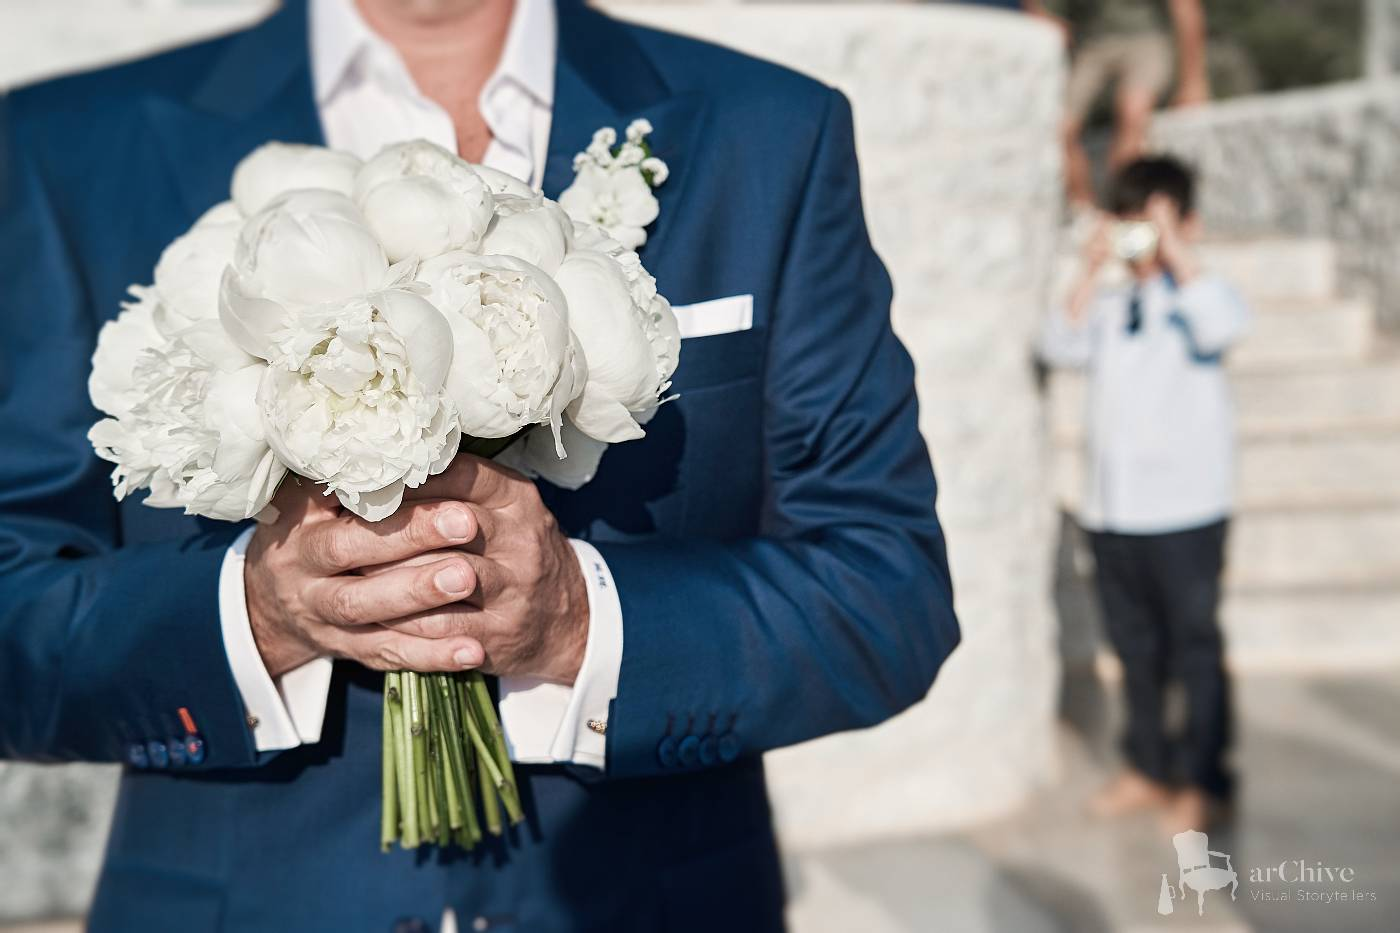 wedding bassa maina peloponnese